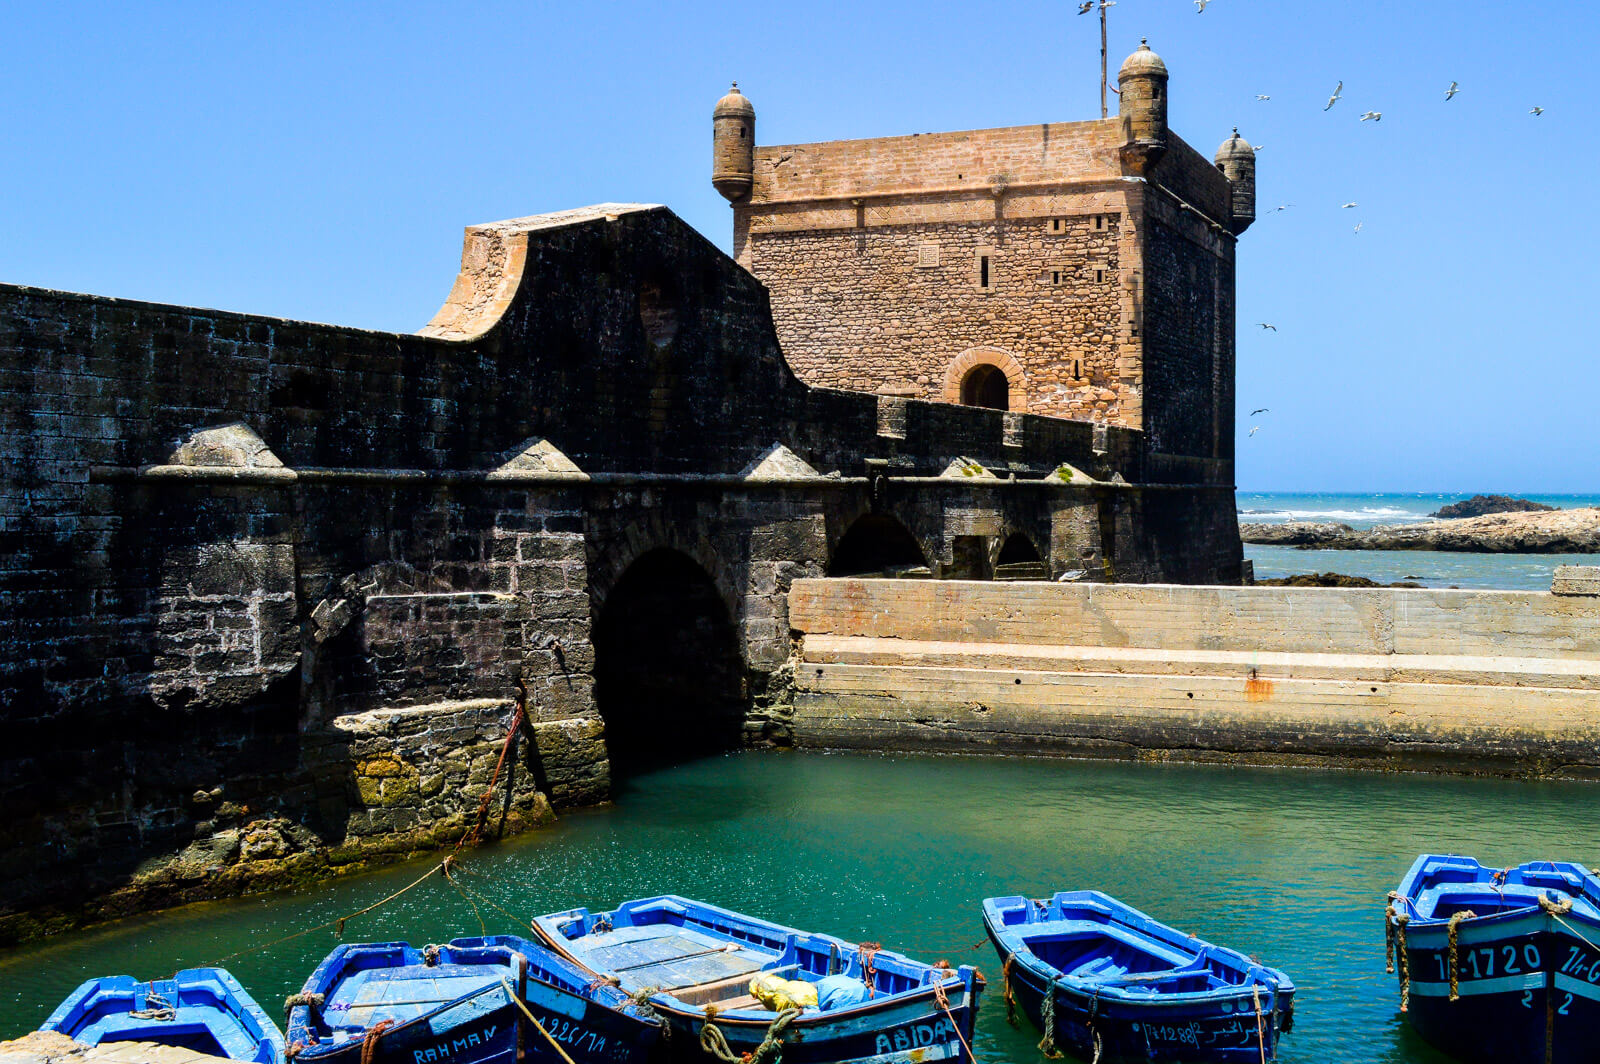 Essaouira, the real life version of Astapor in Game of Thrones